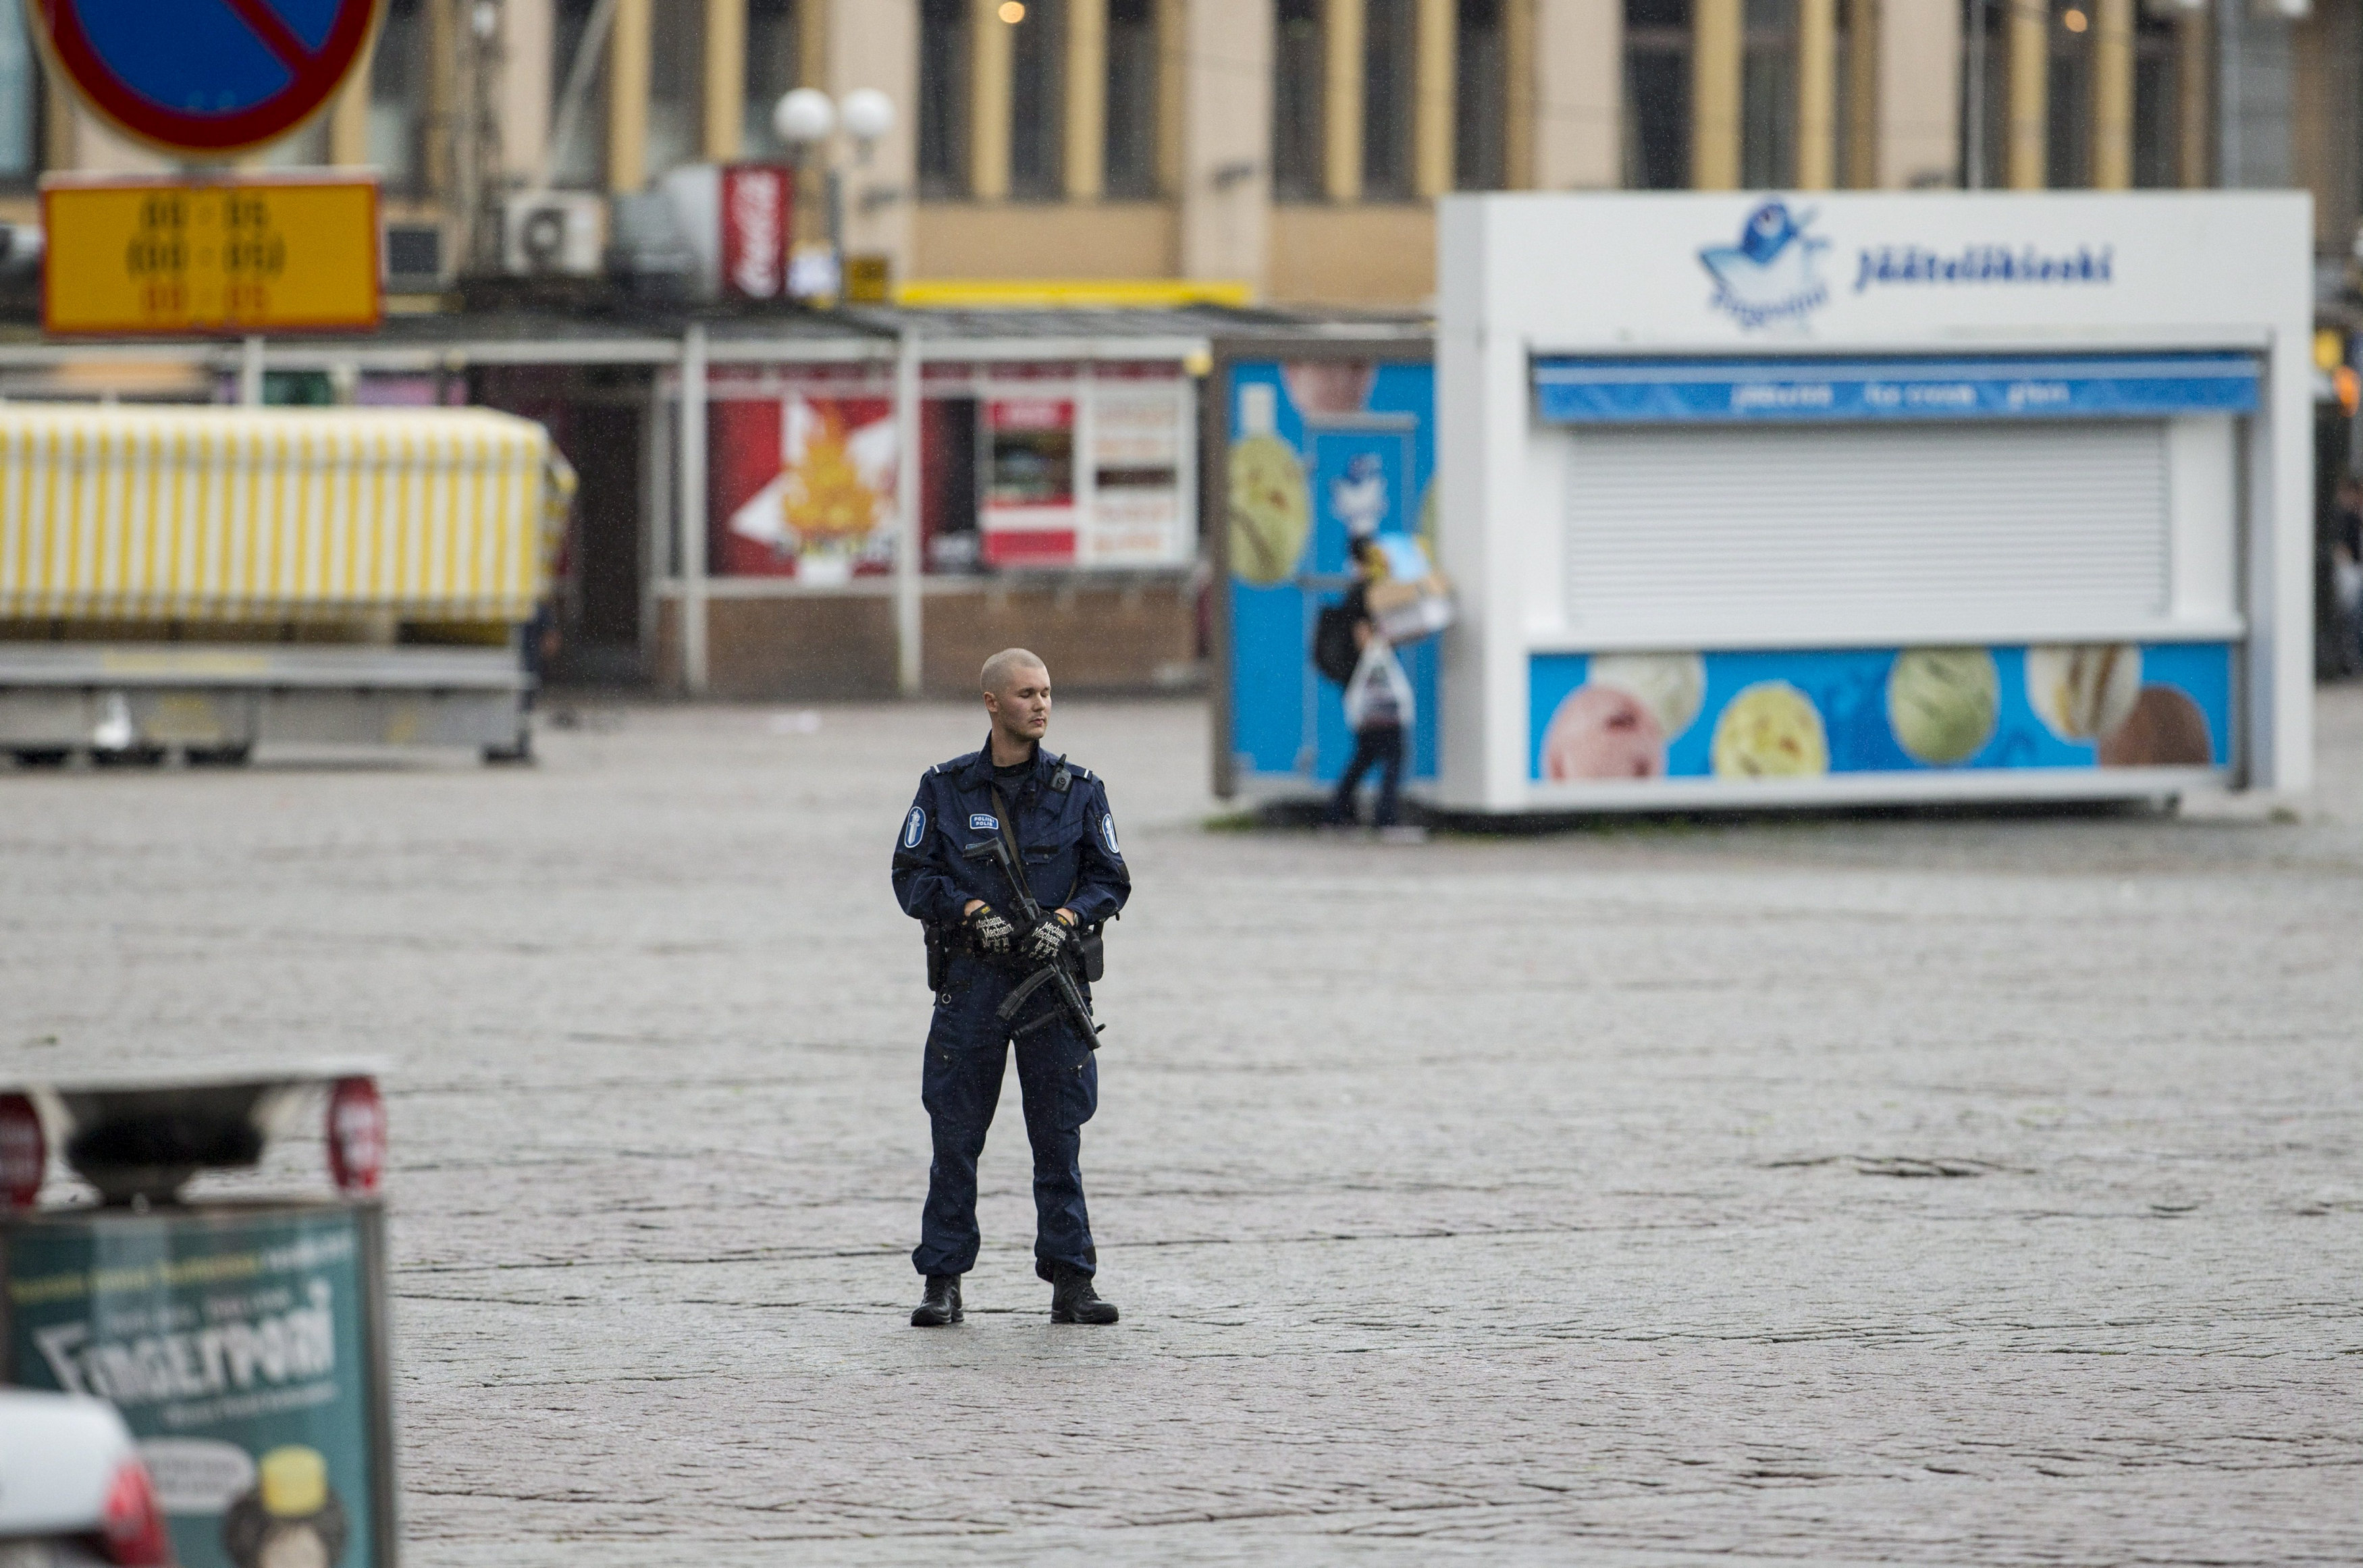 A police keeps watch at the Turku Market Square after several people were stabbed, in Finland August 18, 2017.  LEHTIKUVA/Roni Lehti via REUTERS